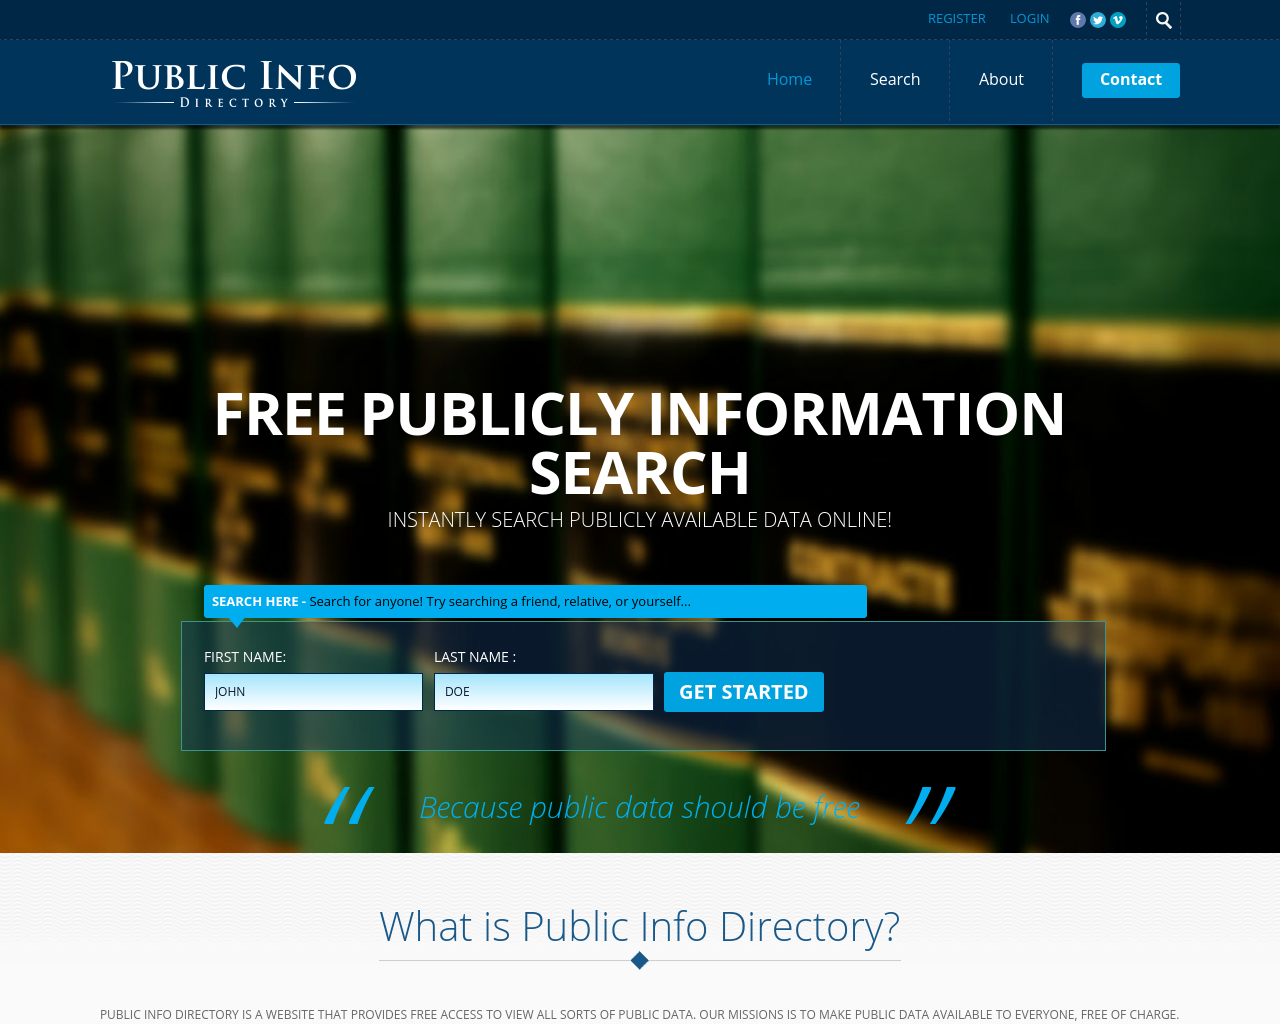 PUBLIC-INFO-DIRECTORY-Advertising-Reviews-Pricing